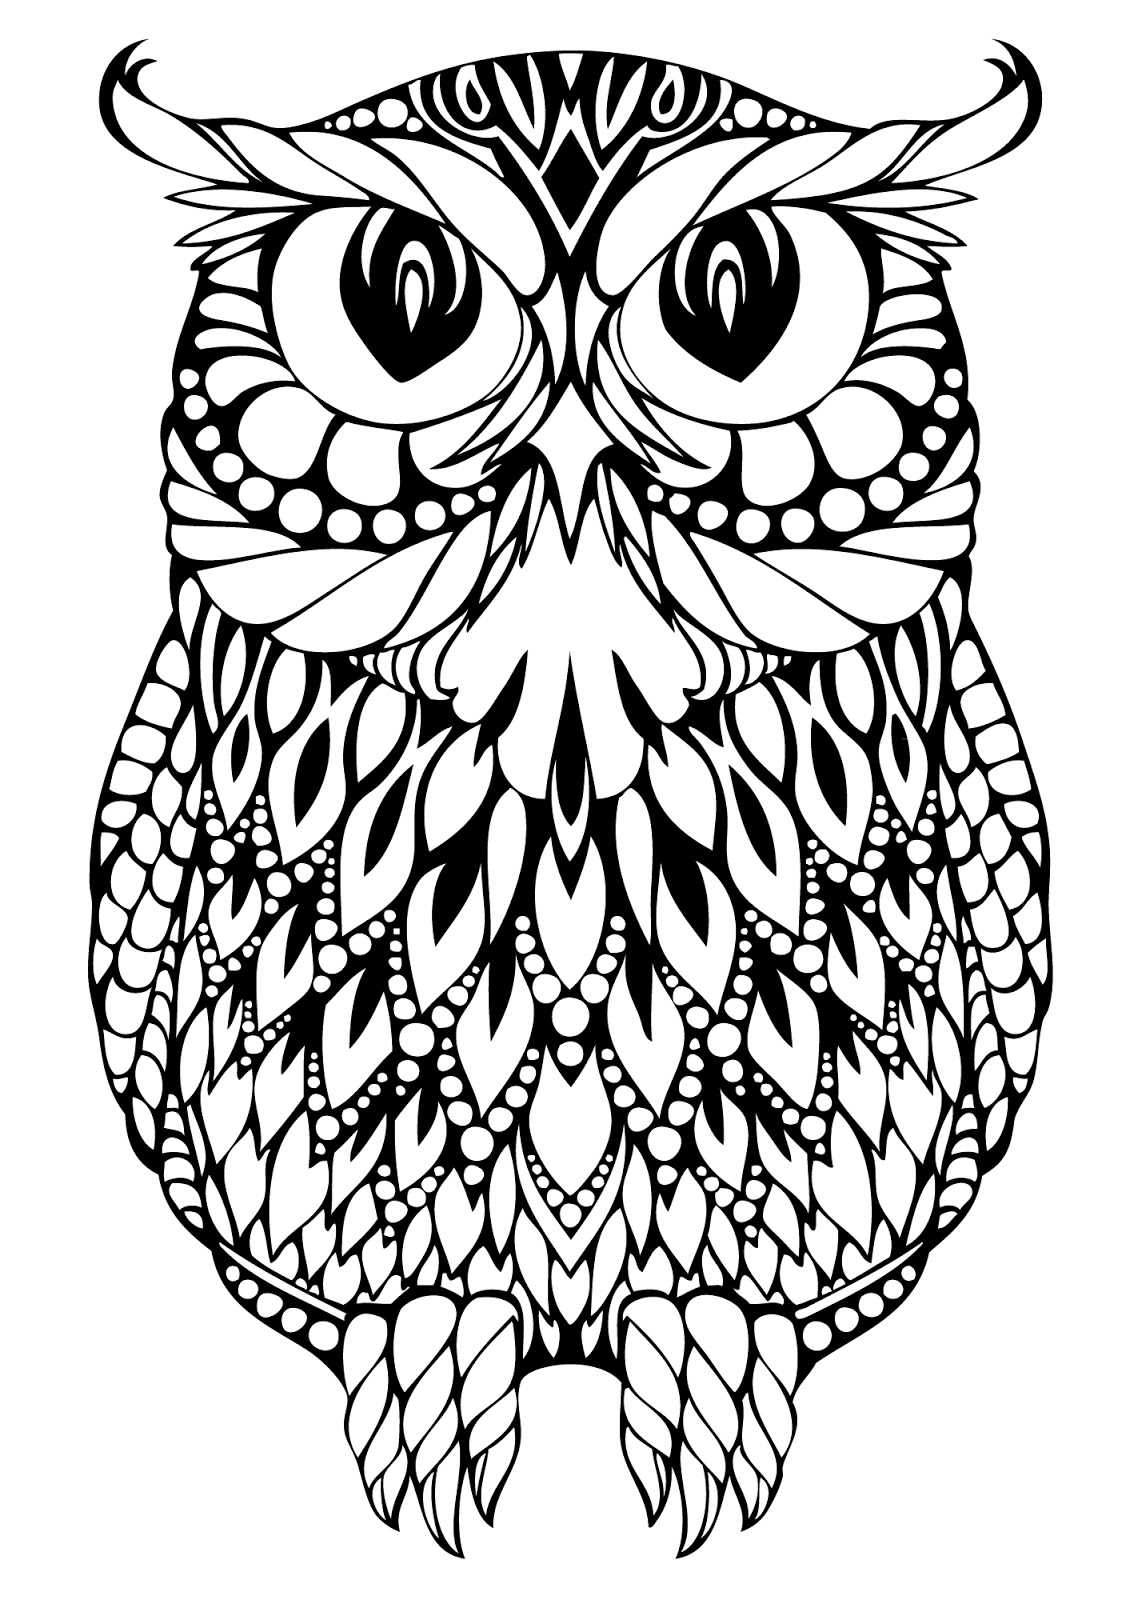 printable pictures to color for adults animal coloring pages for adults best coloring pages for printable for to pictures color adults